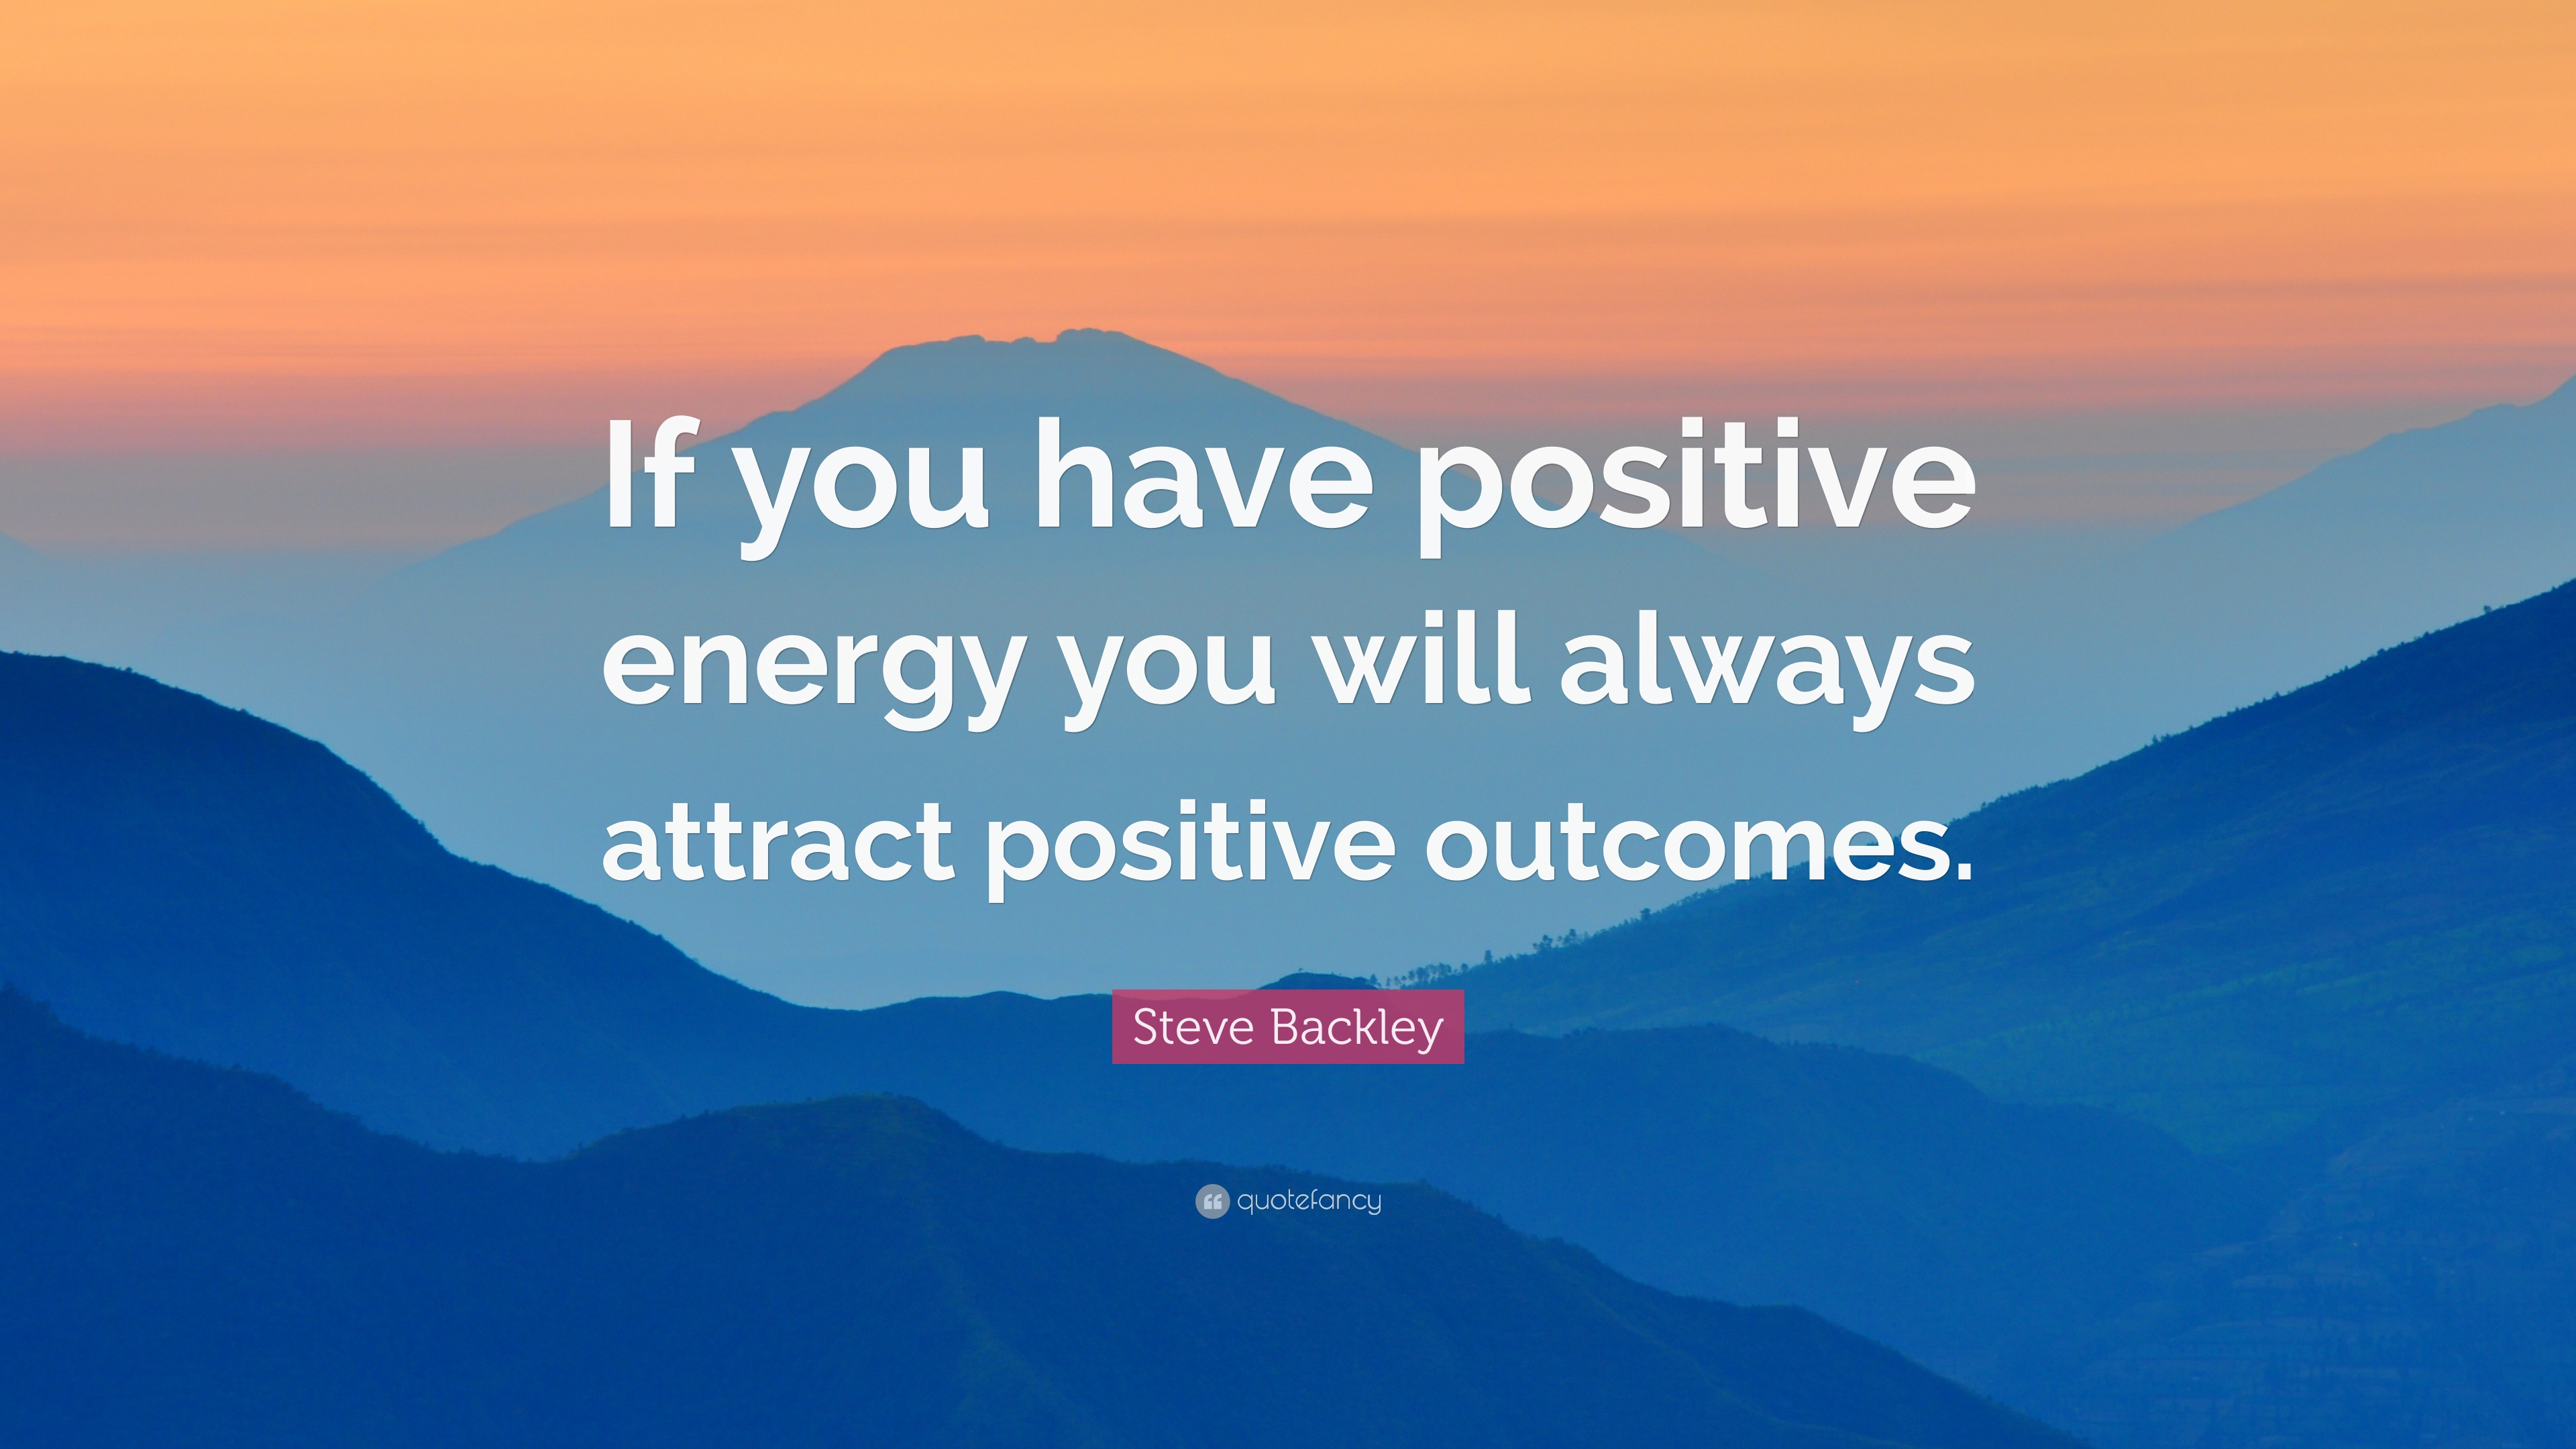 Steve Backley Quote If You Have Positive Energy Will Always Attract Outcomes